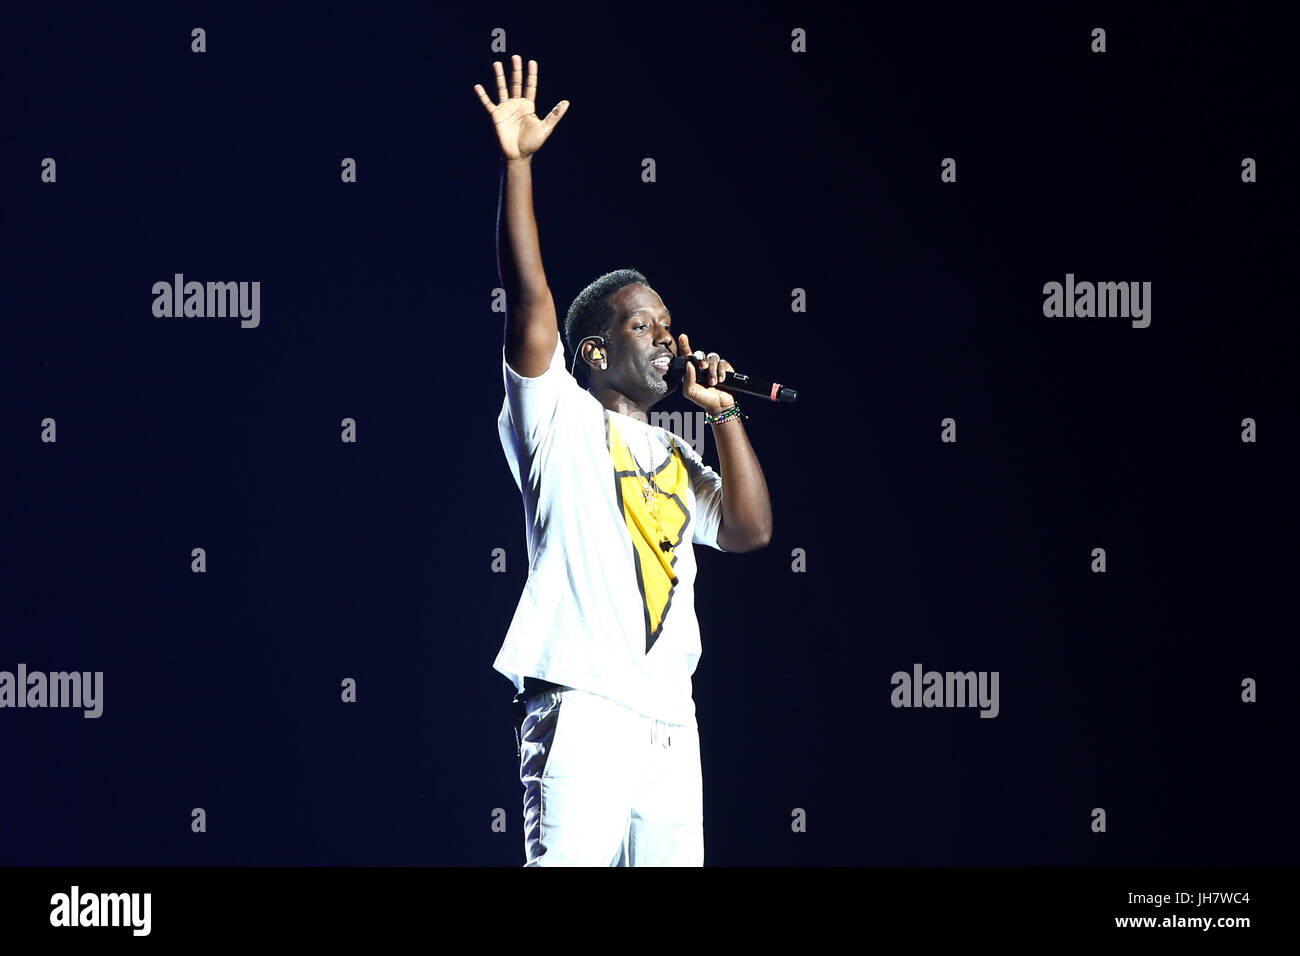 NEW YORK-JUL 7: Shawn Stockman of Boyz II Men performs during The Total Package Tour at NYCB Live at the Nassau - Stock Image